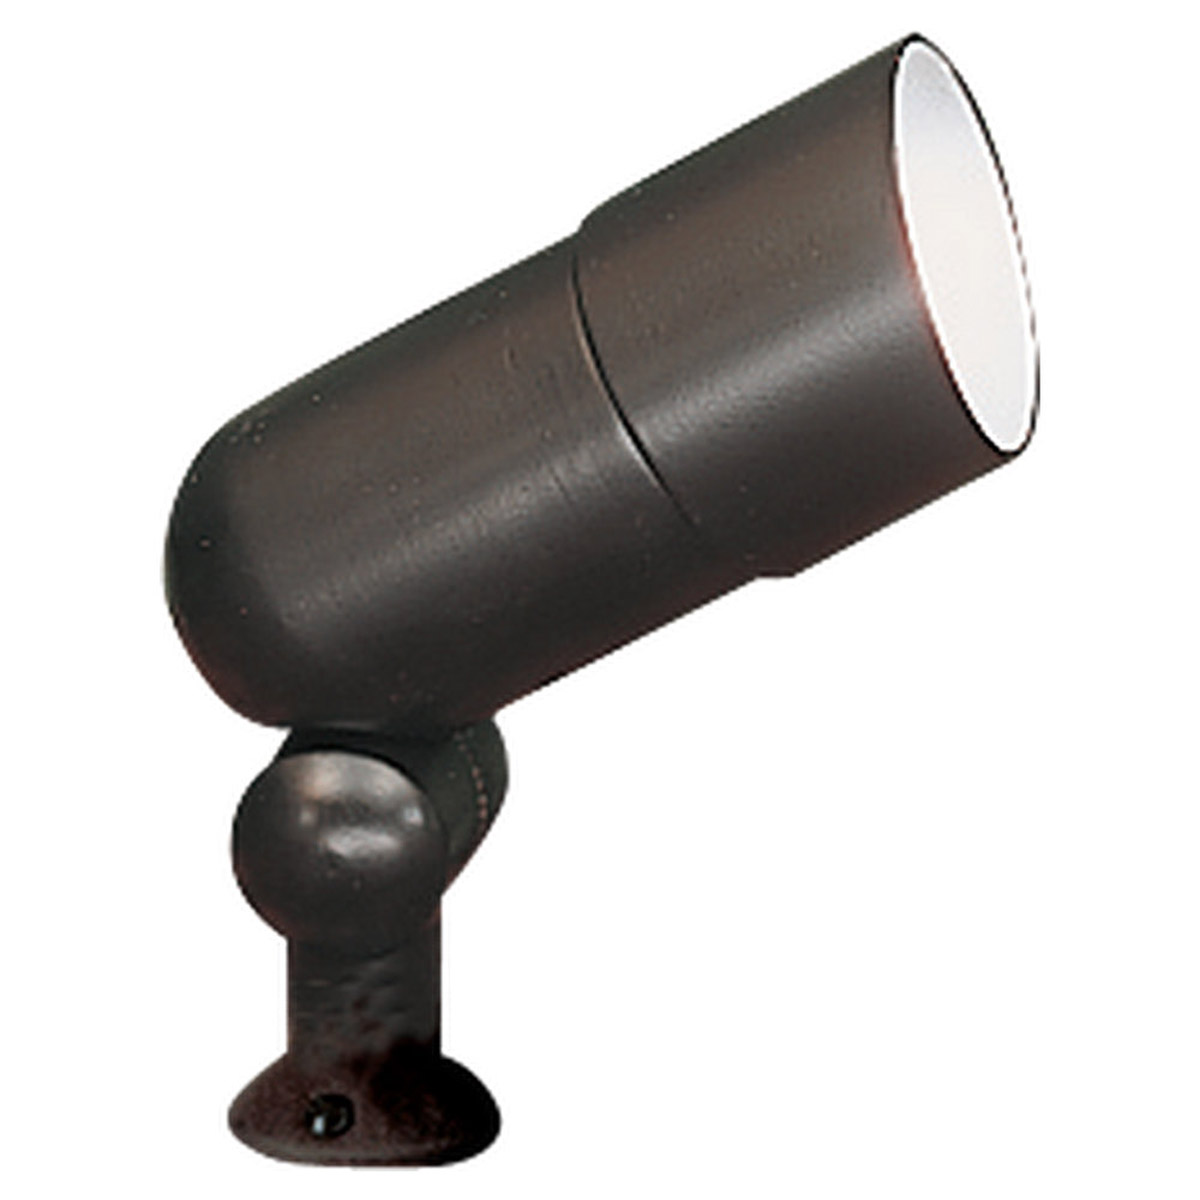 Sea Gull Lighting Landscape Lighting Landscape Lighting System Spot Light 9323-12 photo